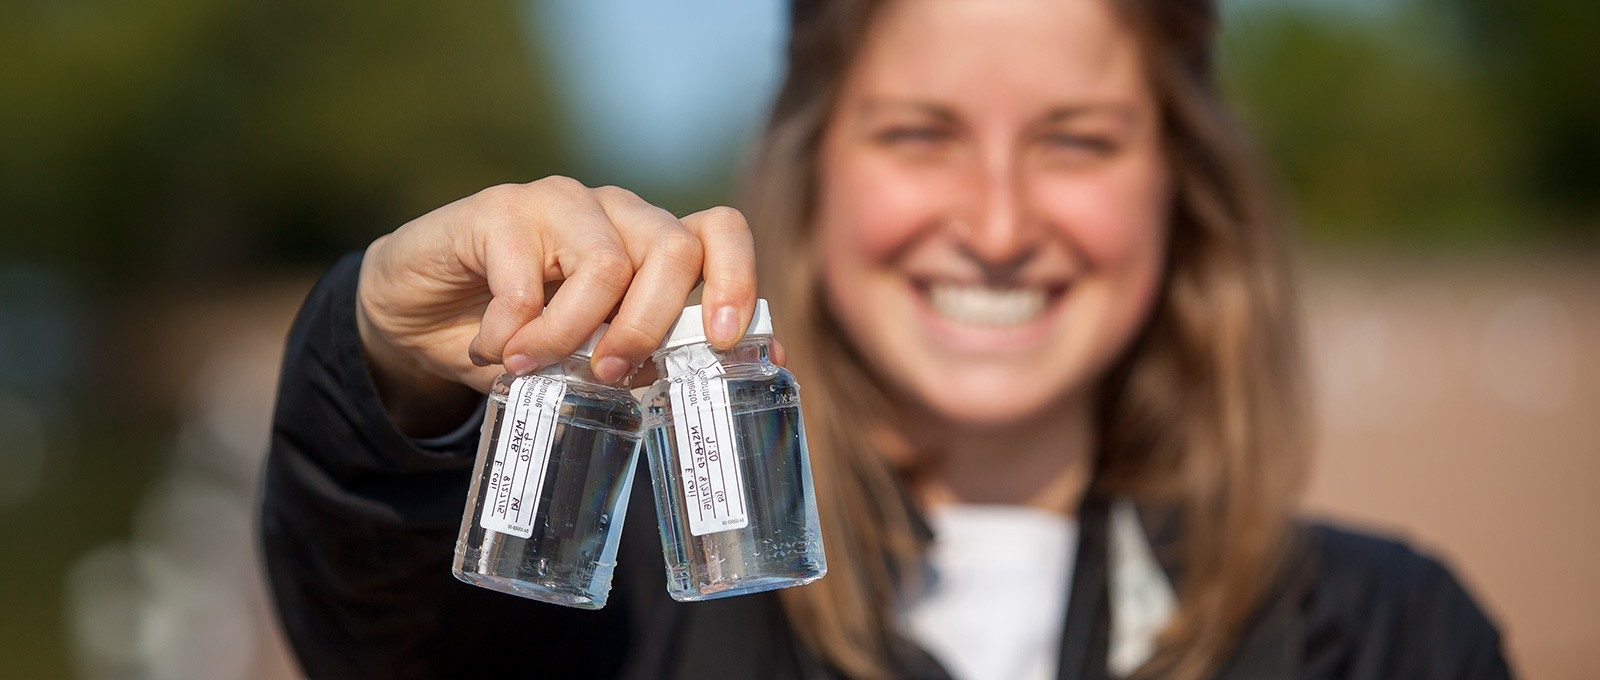 student with water samples